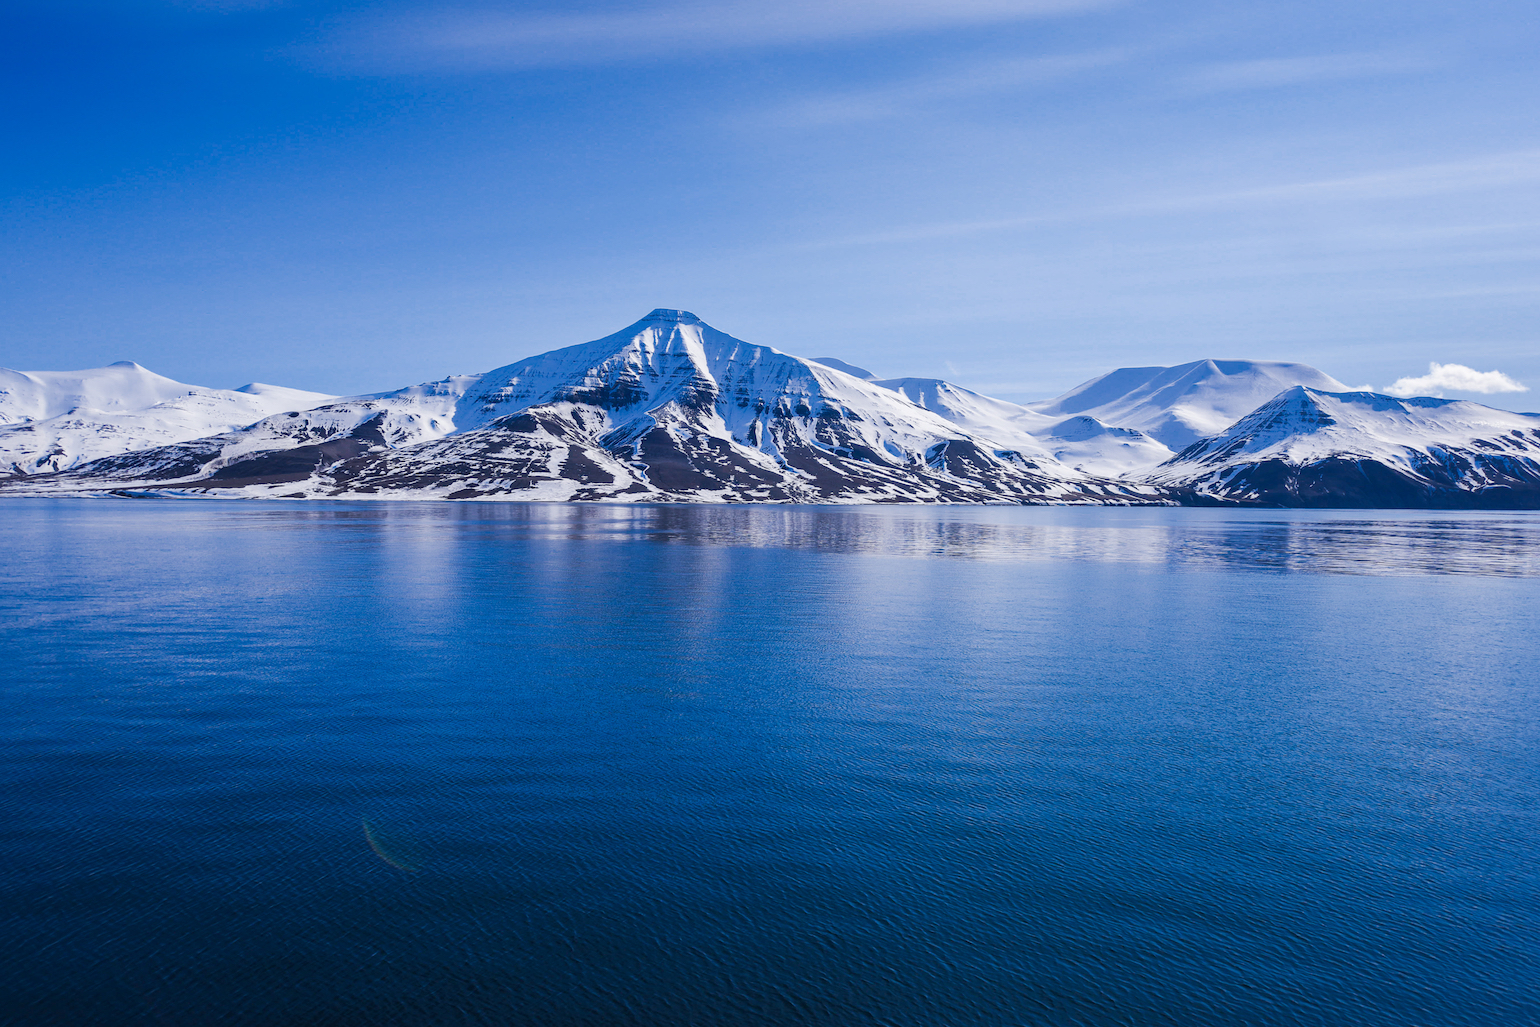 A study has shown that the eastern Arctic Ocean is becoming more like the Atlantic Ocean as a result of sea ice melting due to climate change.